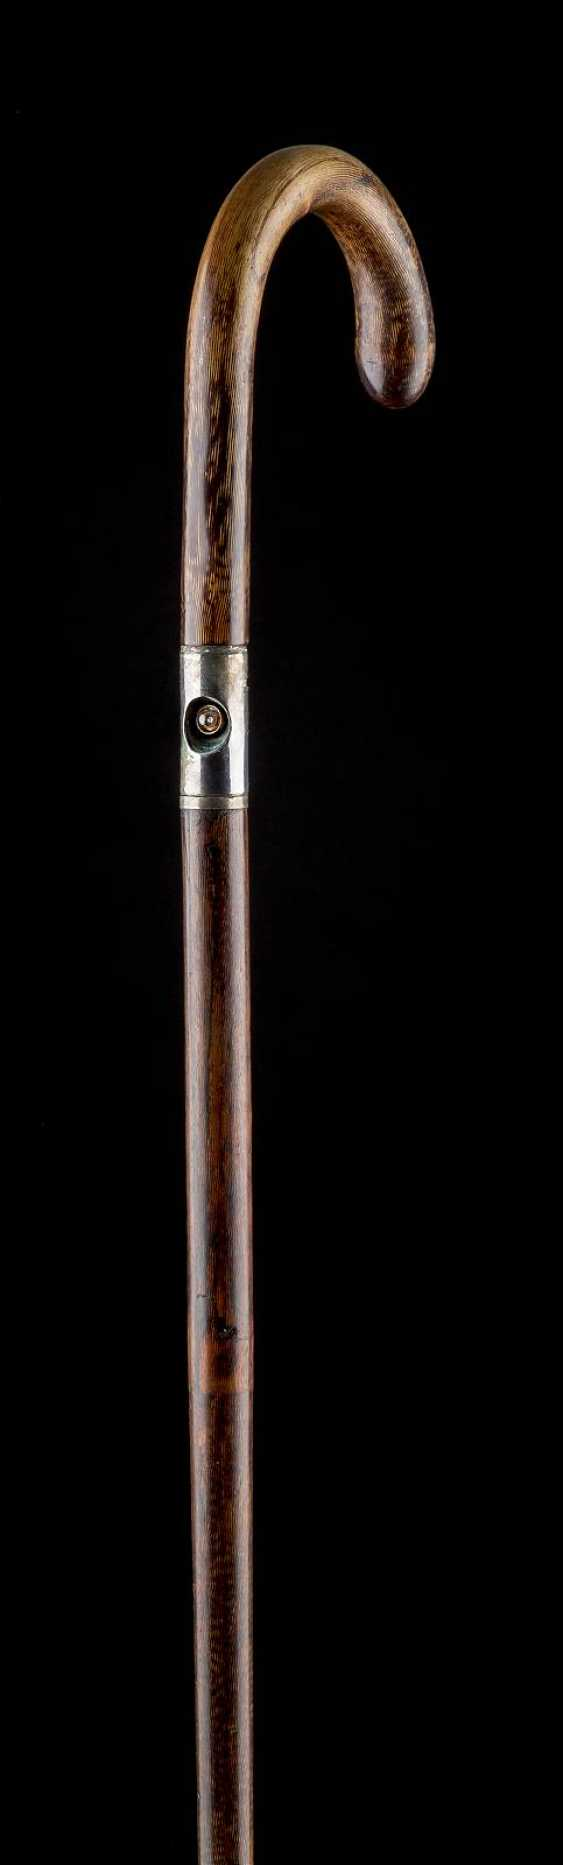 WALKING STICK WITH BUILT-IN LIGHTING - photo 1